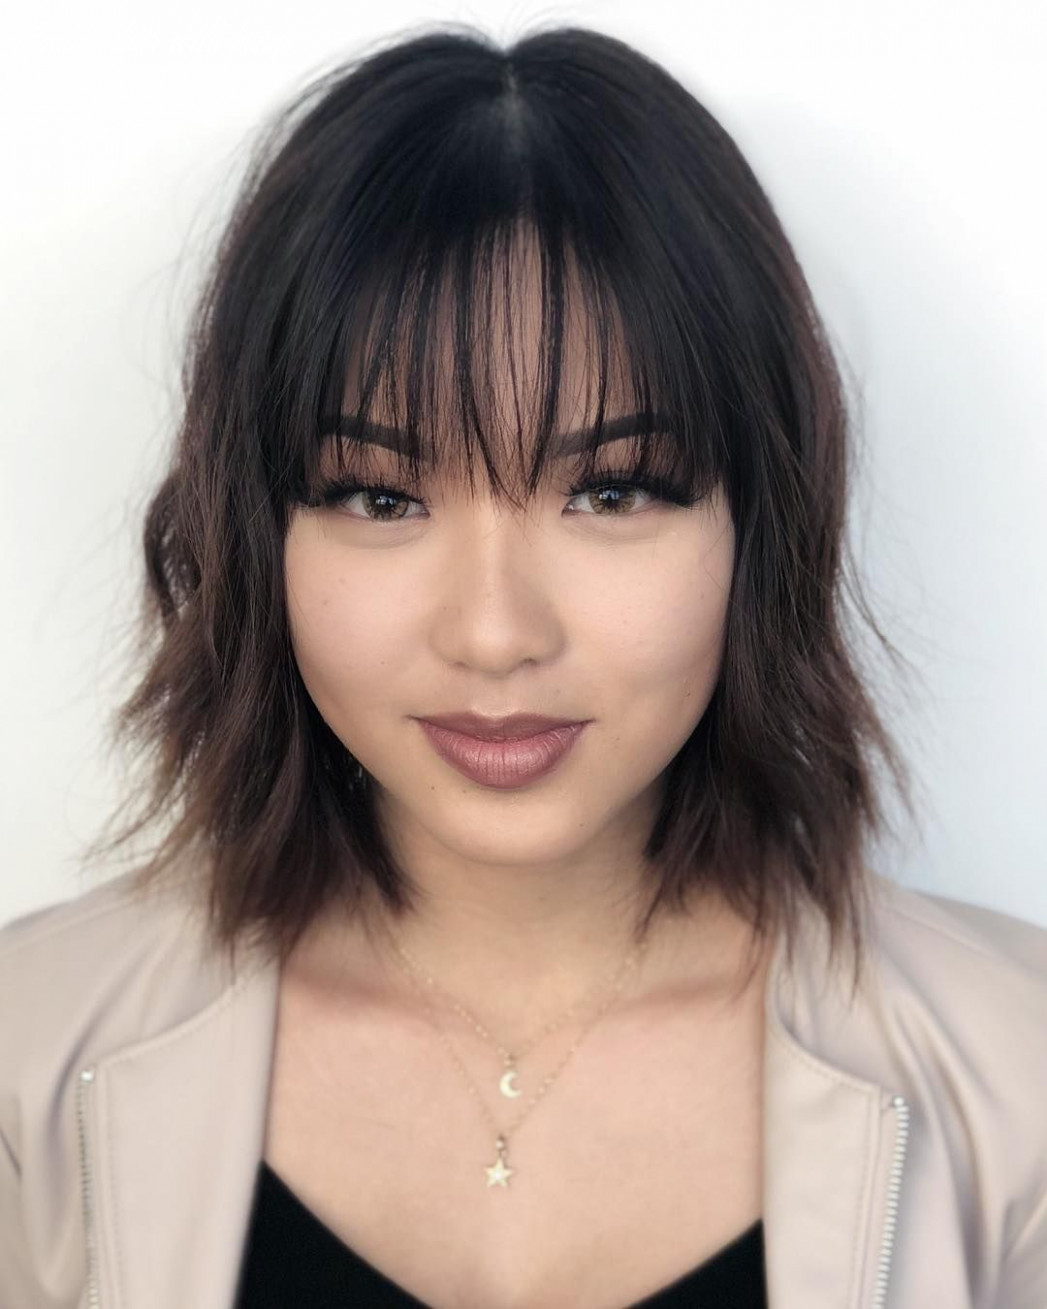 Fringe and texture are both popular hair trends right now you